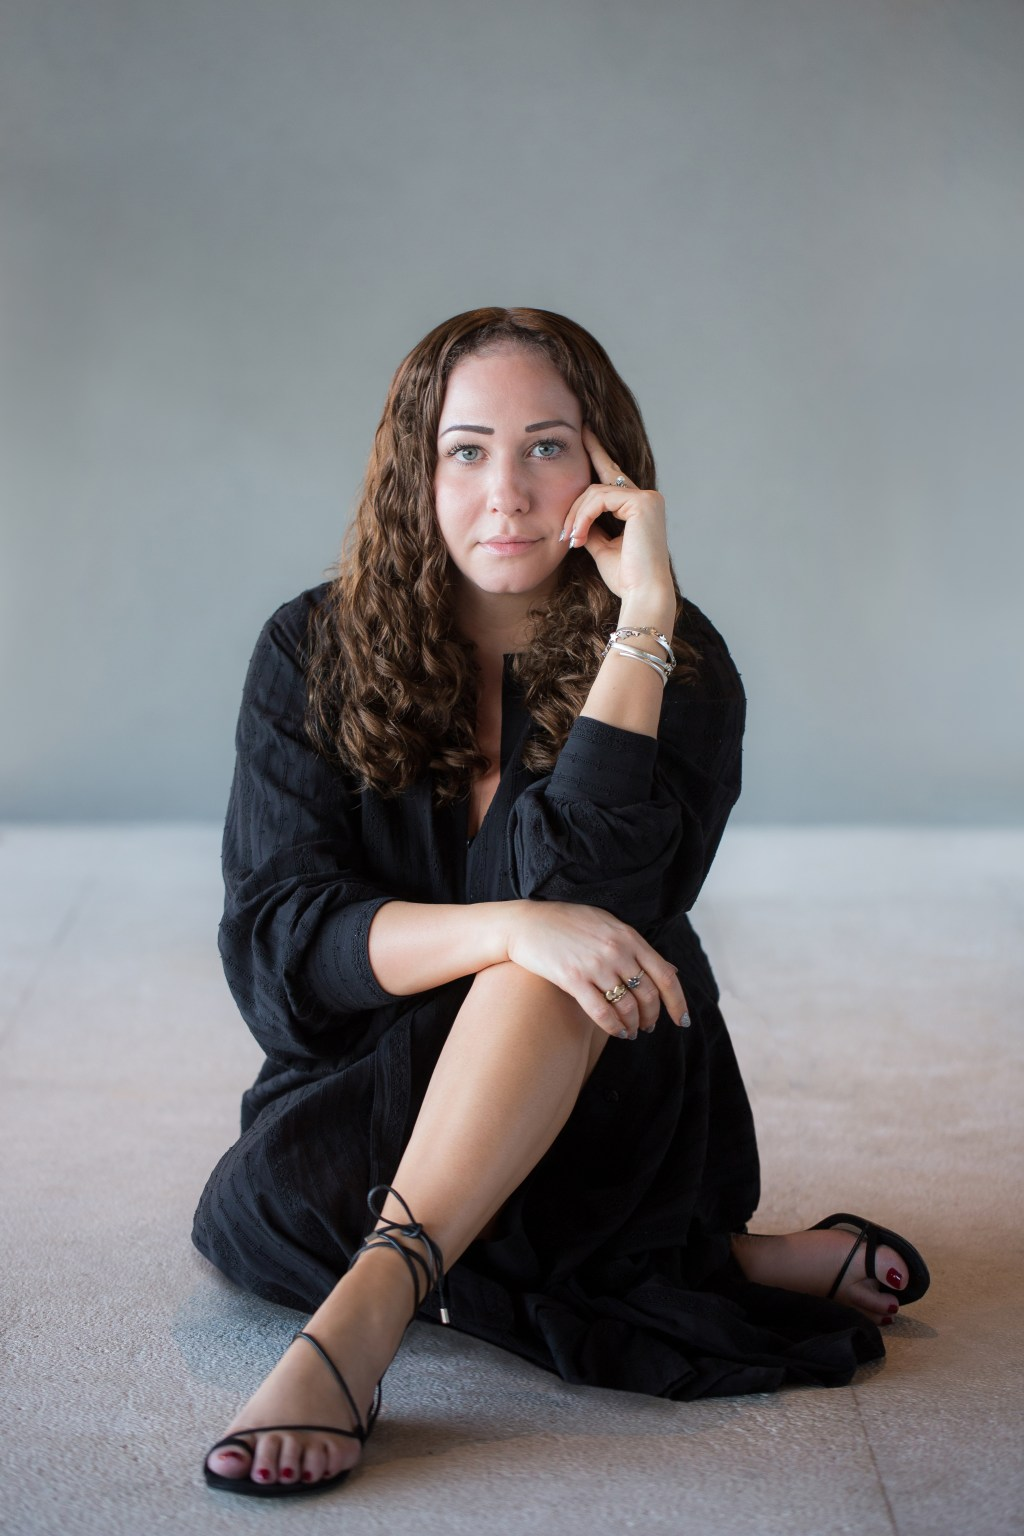 CARRIE GOLDBERG: Travel & Weddings Director, Harpers Bazaar